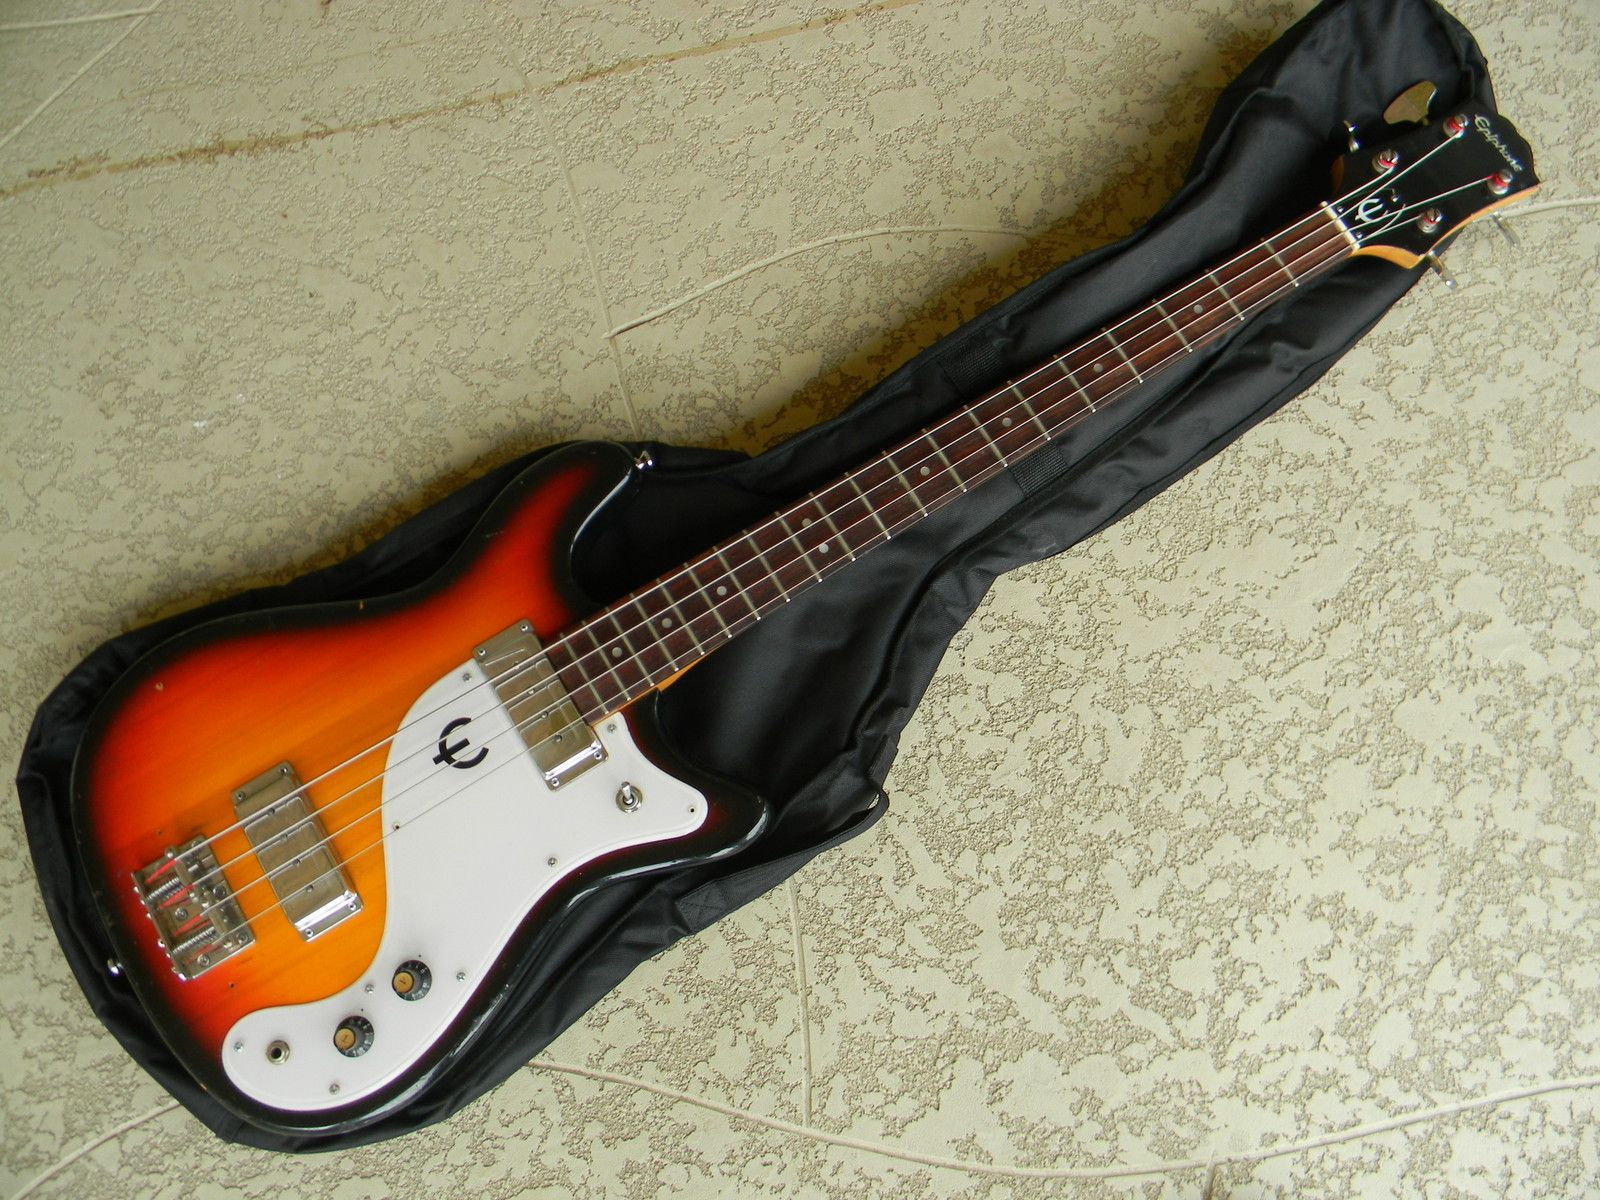 Vintage epiphone newport bass early 70's made in japan